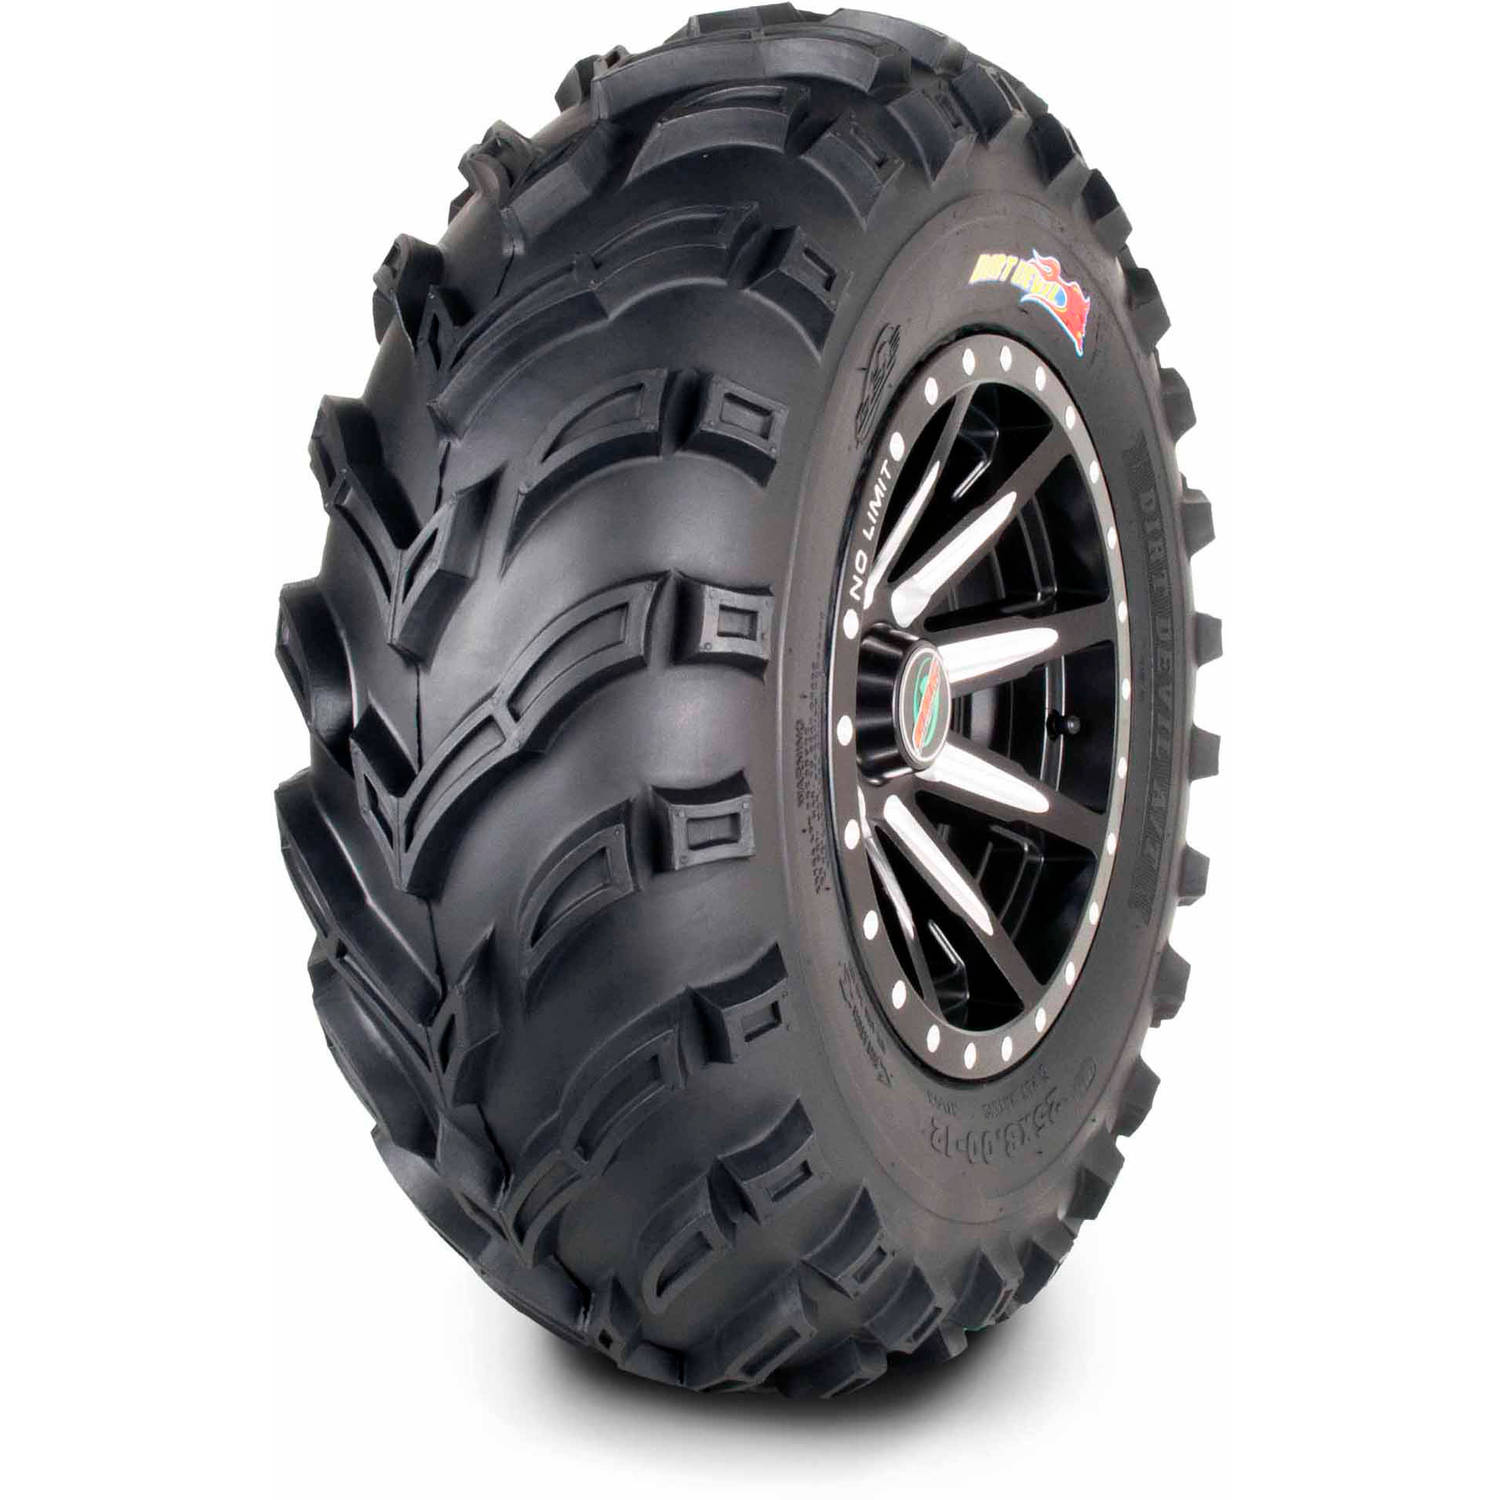 GBC Motorsports Dirt Devil 23X8.00-10 6 Ply ATV/UTV Tire (Tire Only)